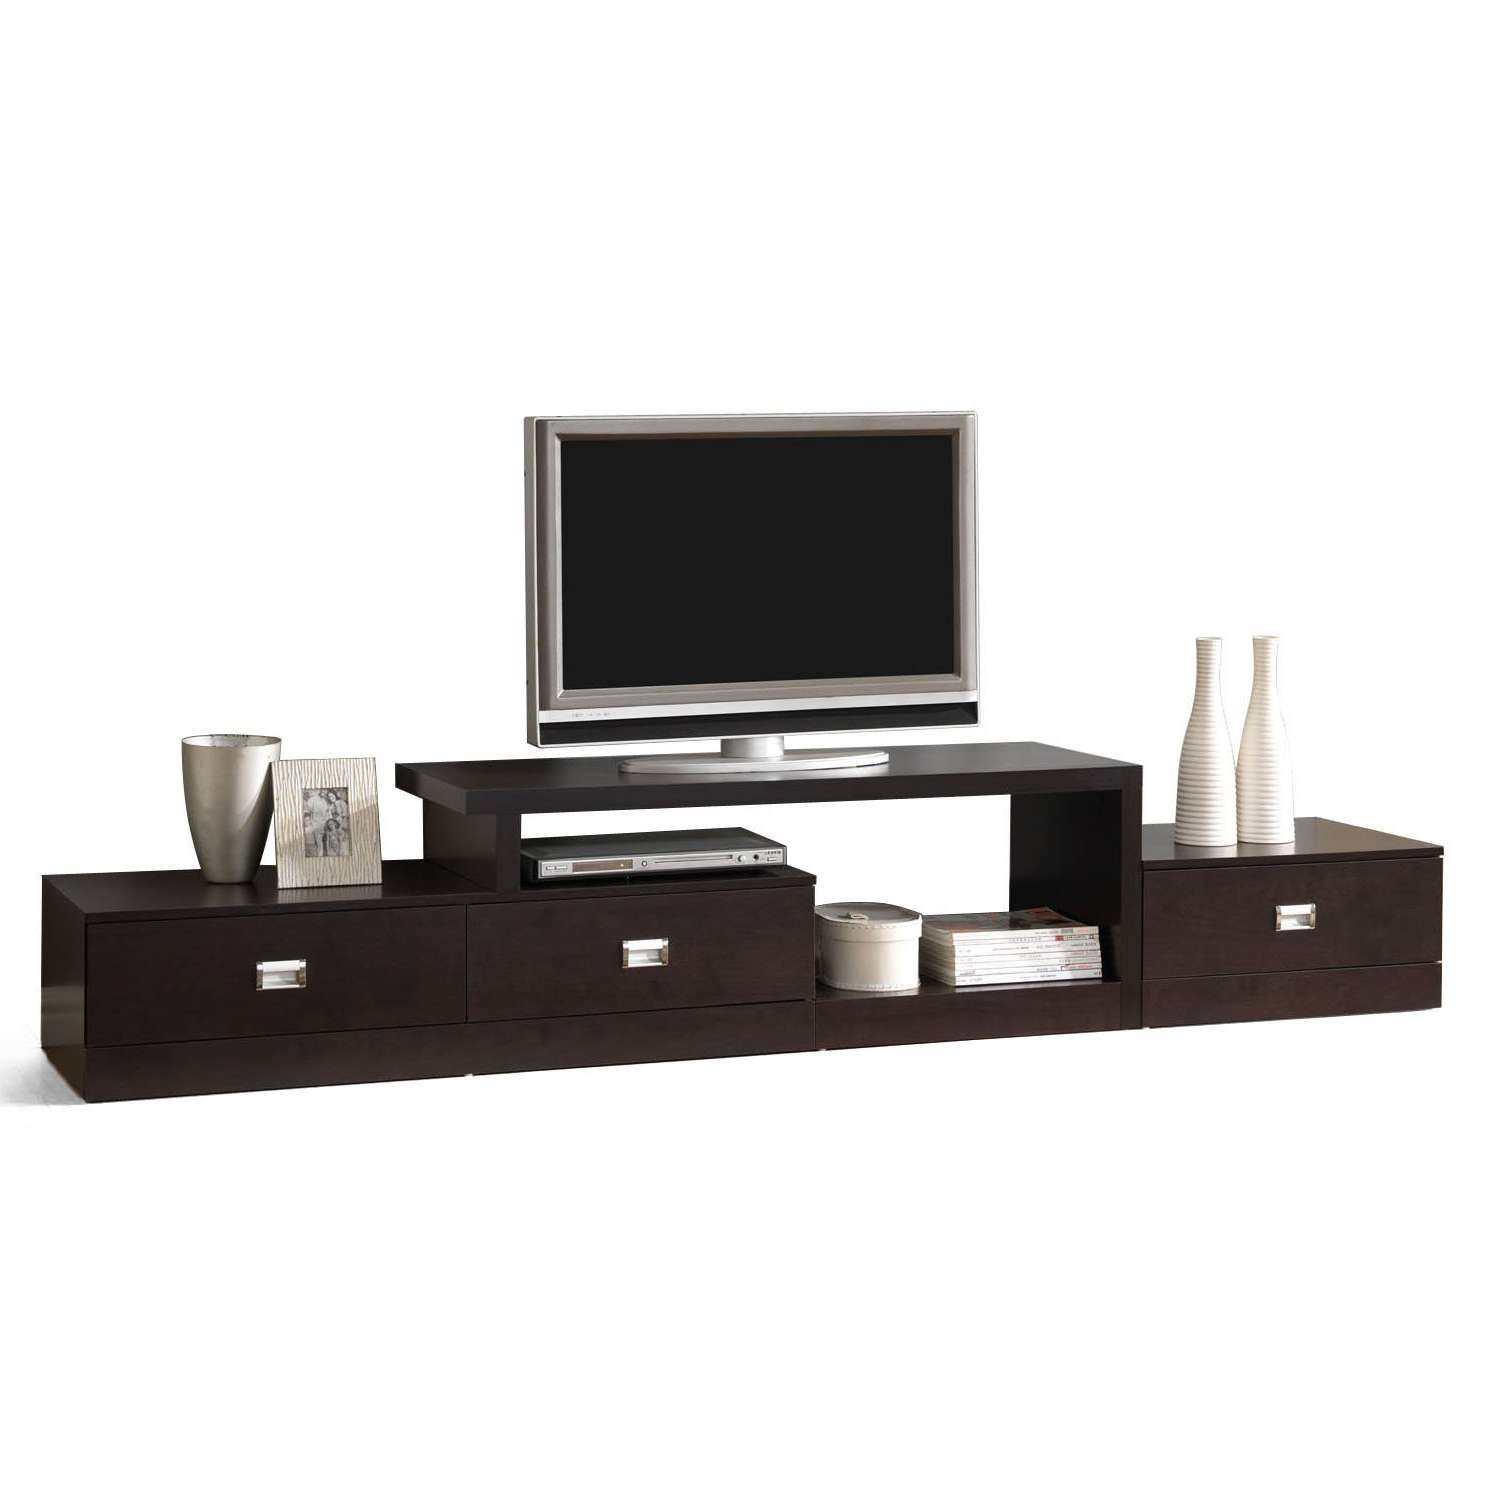 Low Tv Stand With Color White Tv Stand And Several Drawers And Add Regarding Modern Low Tv Stands (View 11 of 20)